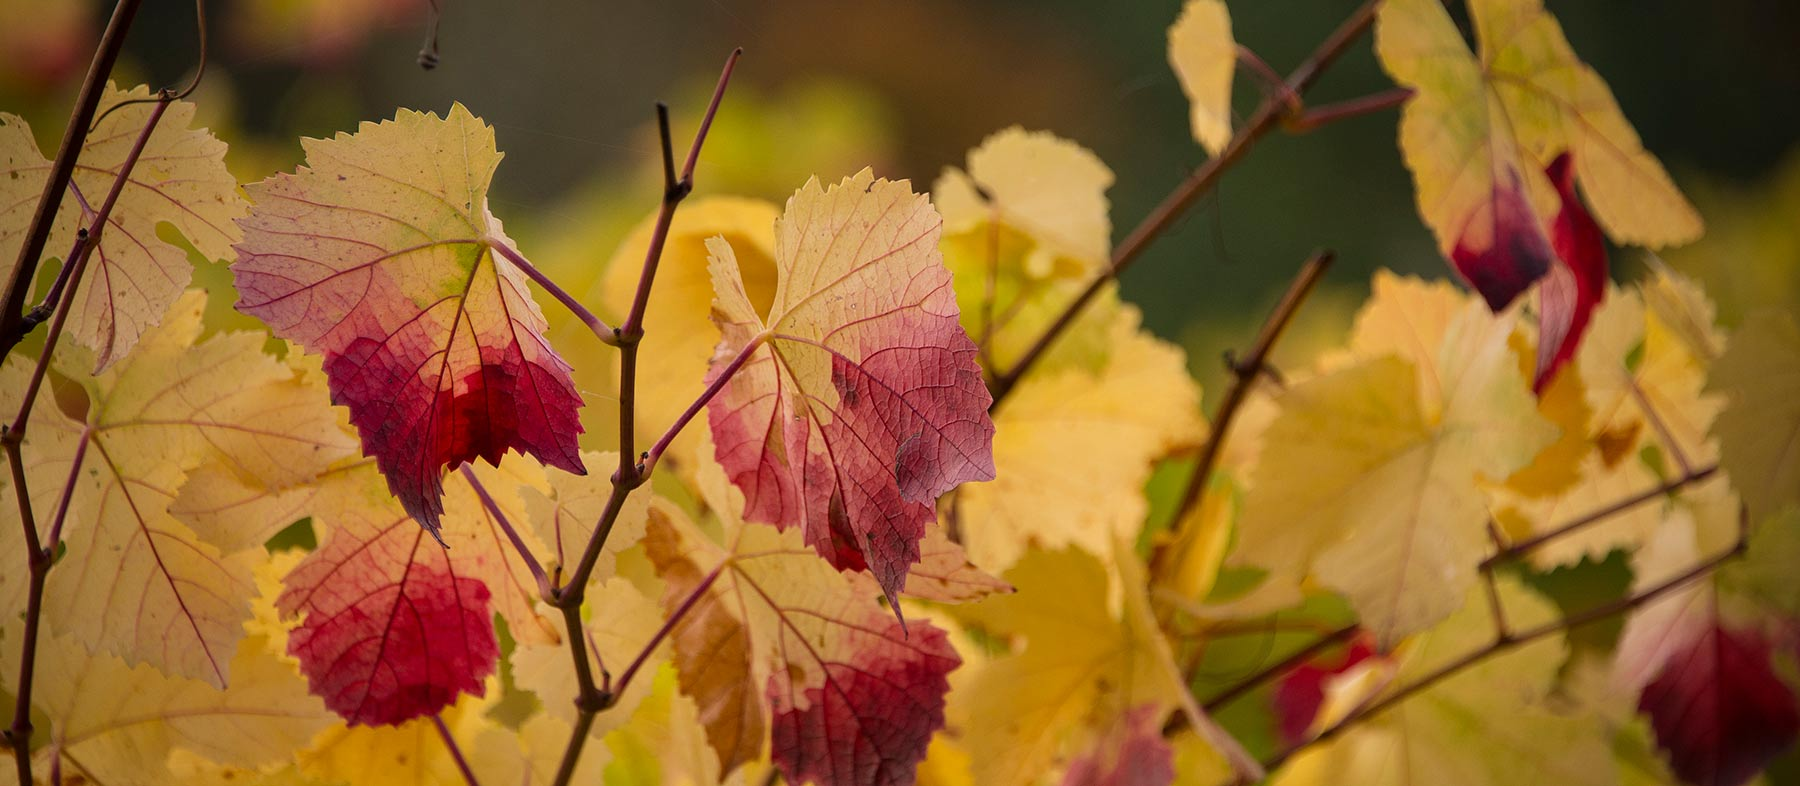 Autumn-Leaf-Background